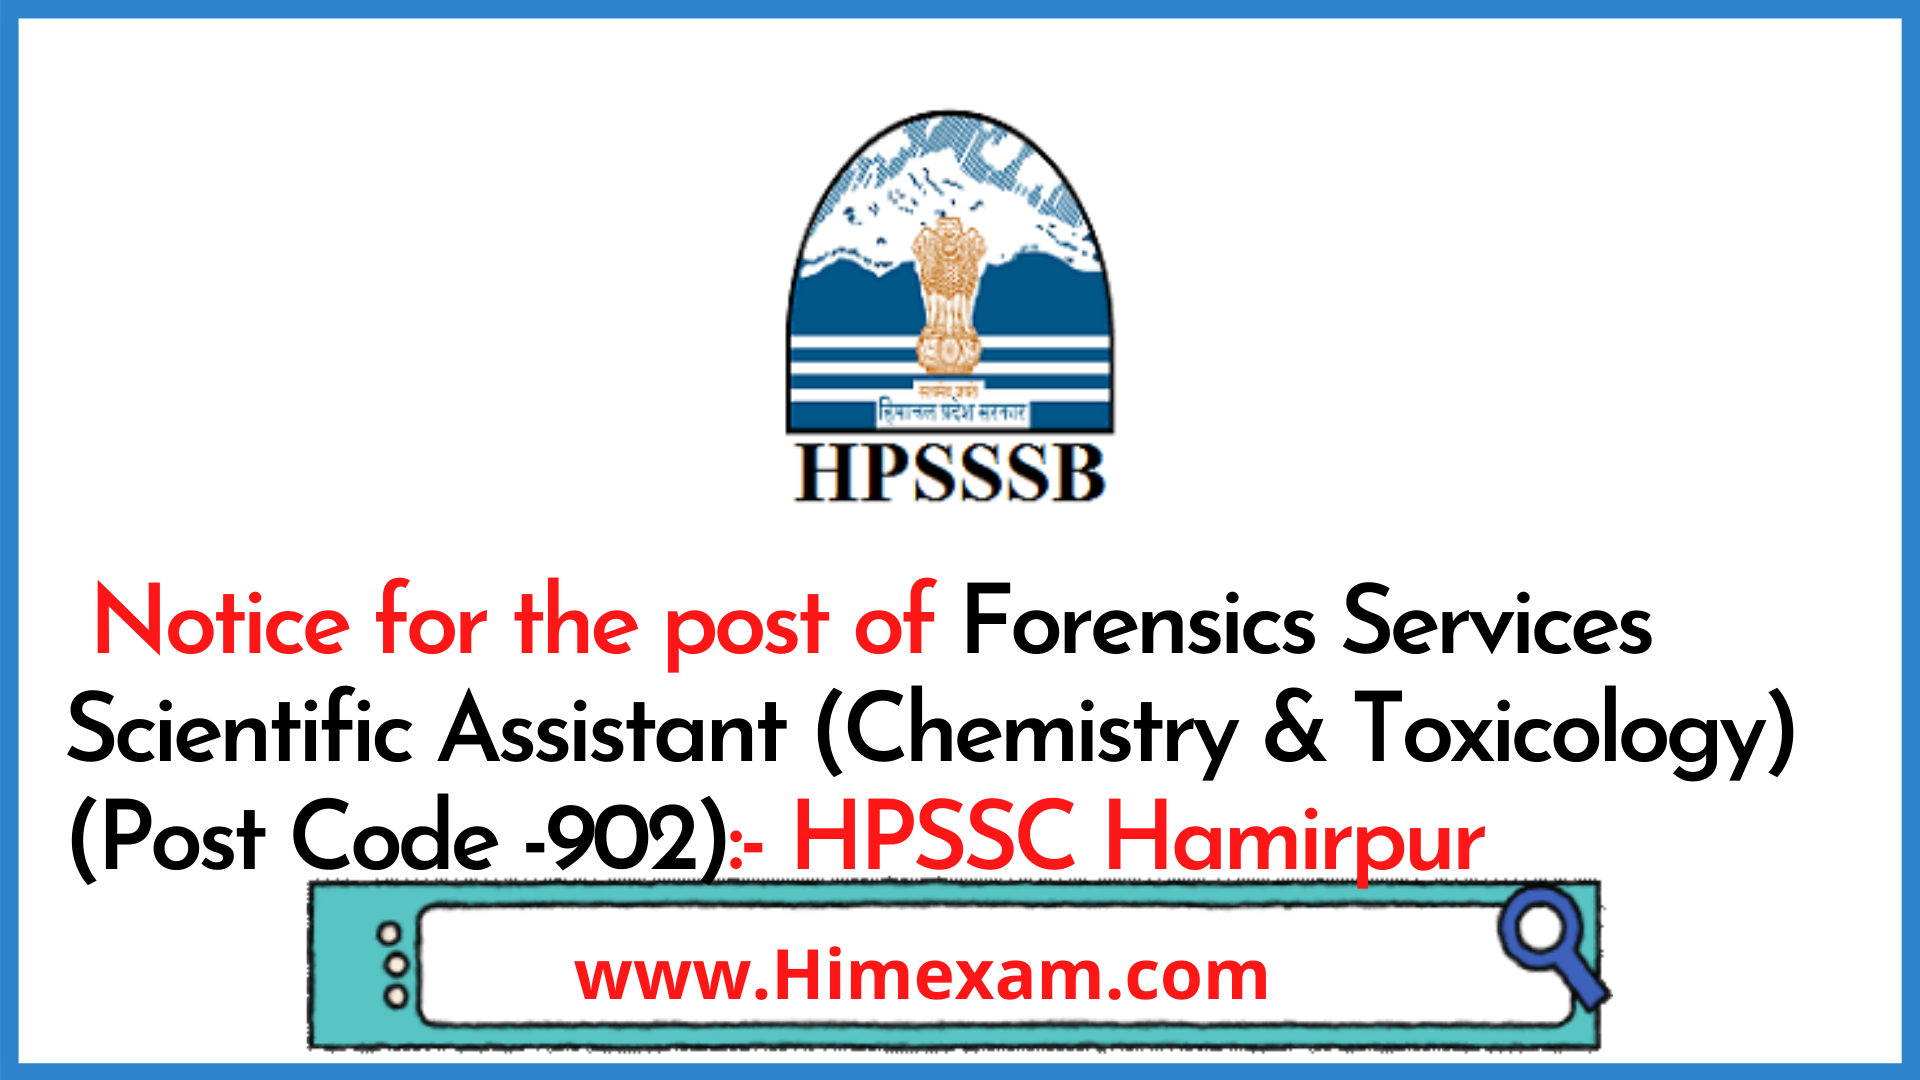 Notice  for the post of Forensics Services Scientific Assistant (Chemistry & Toxicology) (Post Code -902):- HPSSC Hamirpur